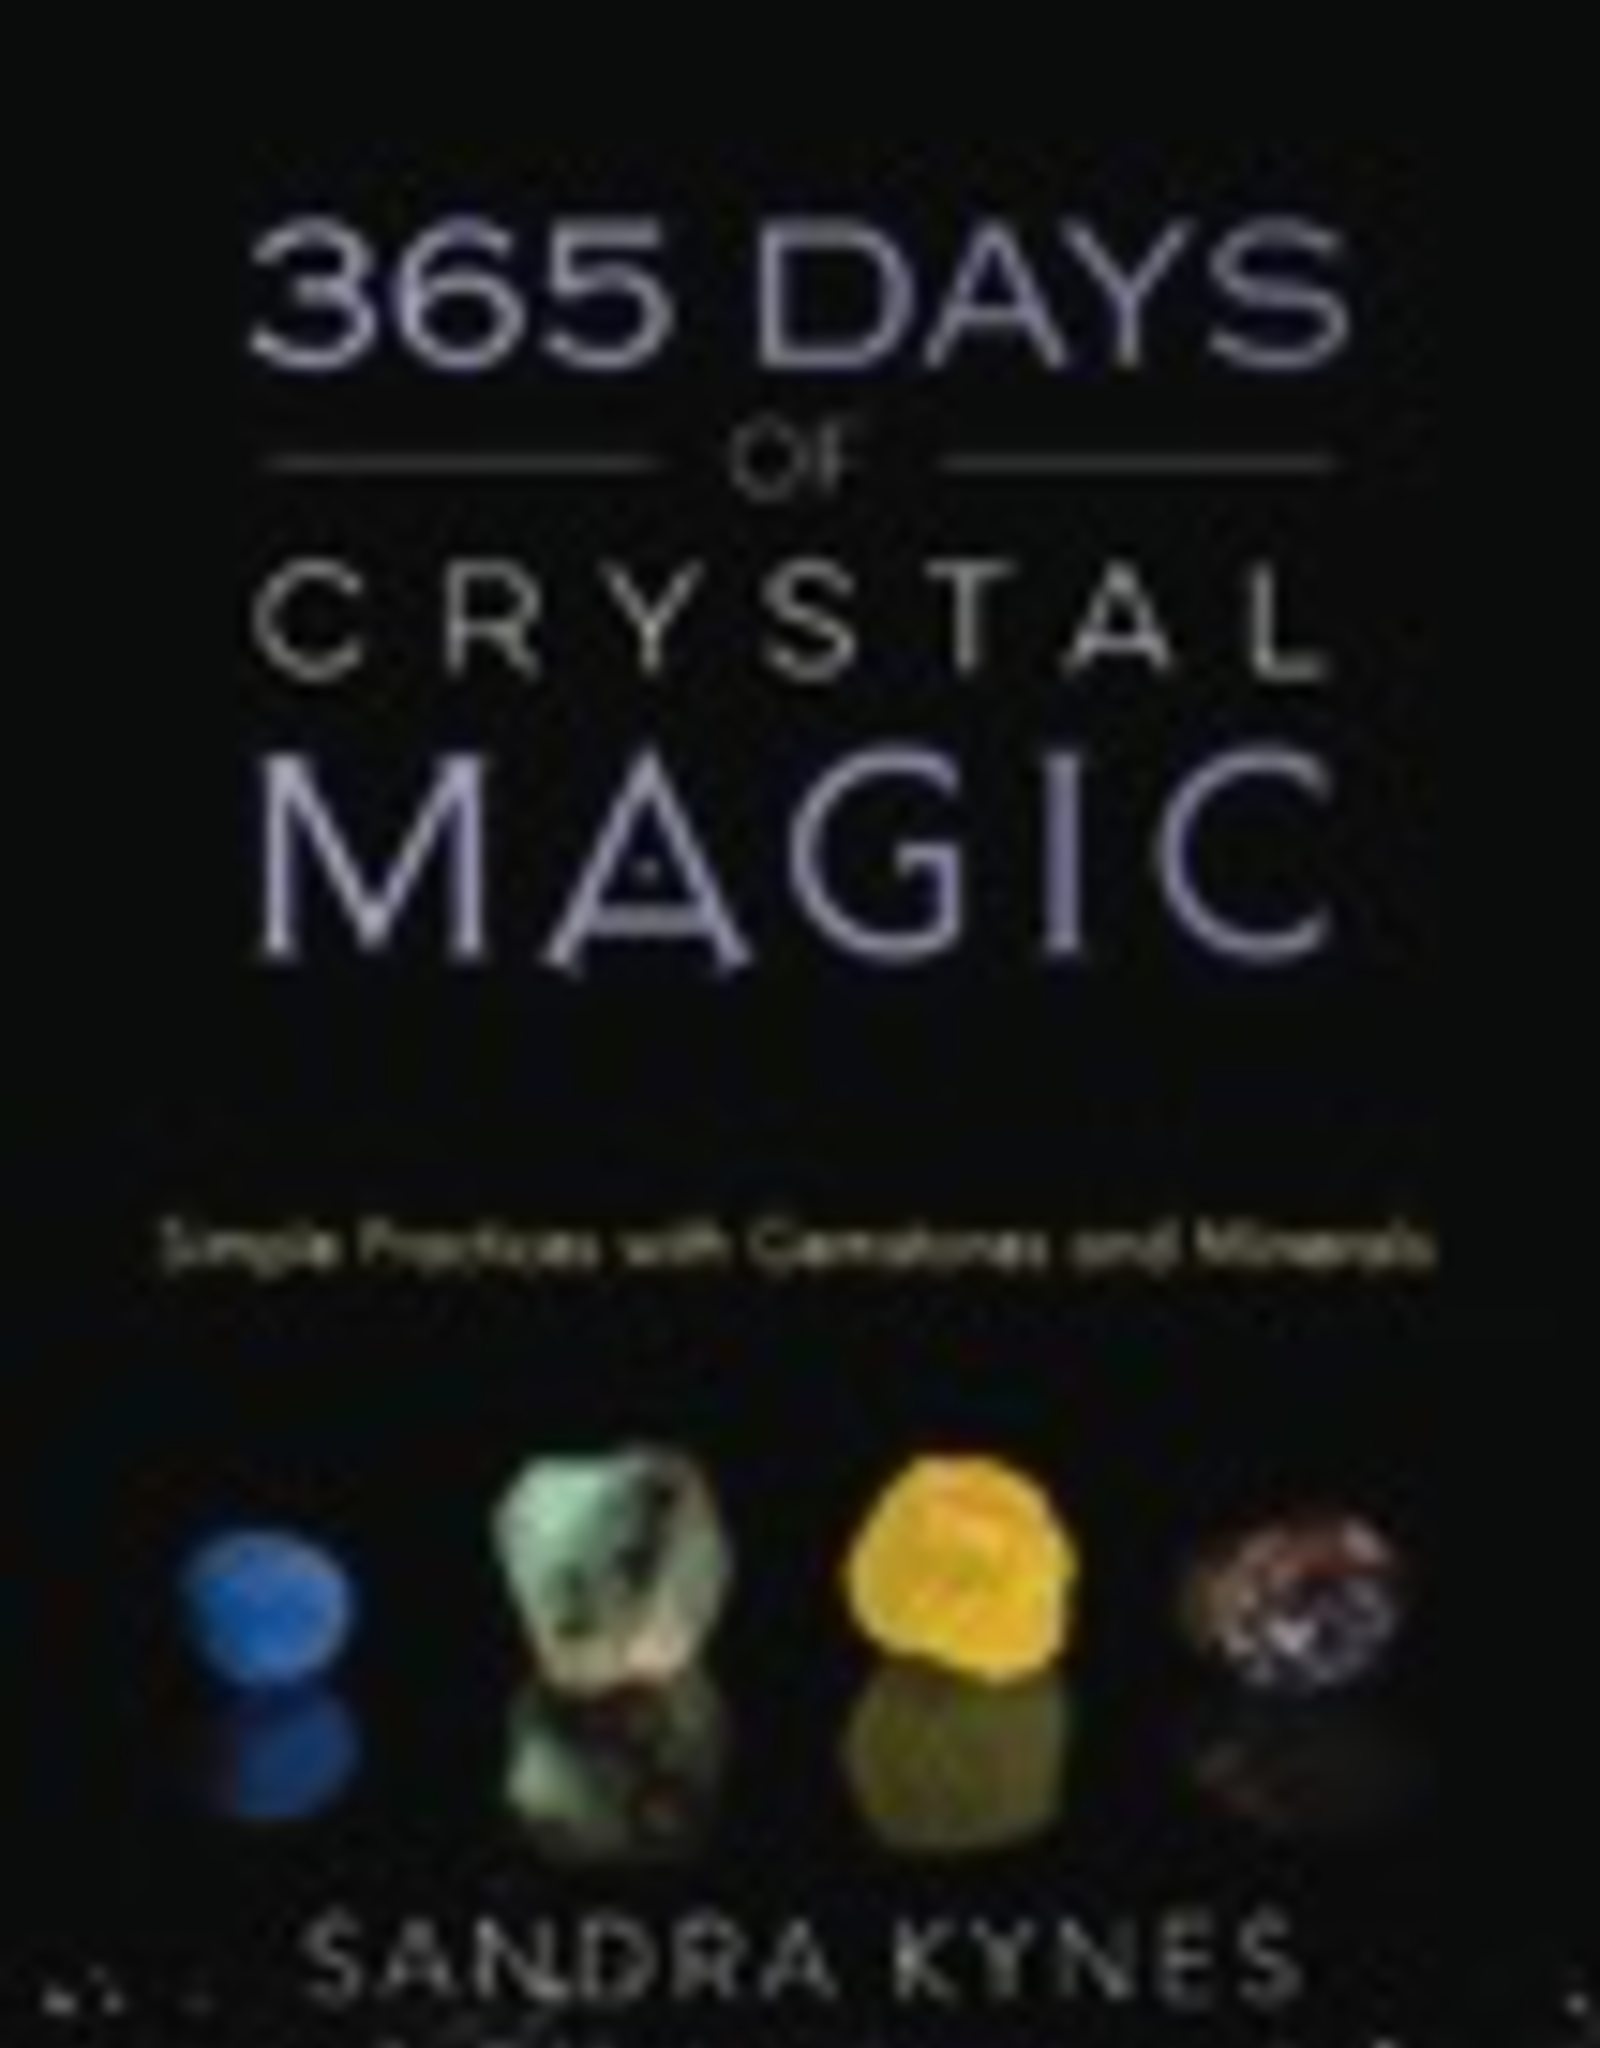 365 Days of Crystals Magic by Sandra Kynes